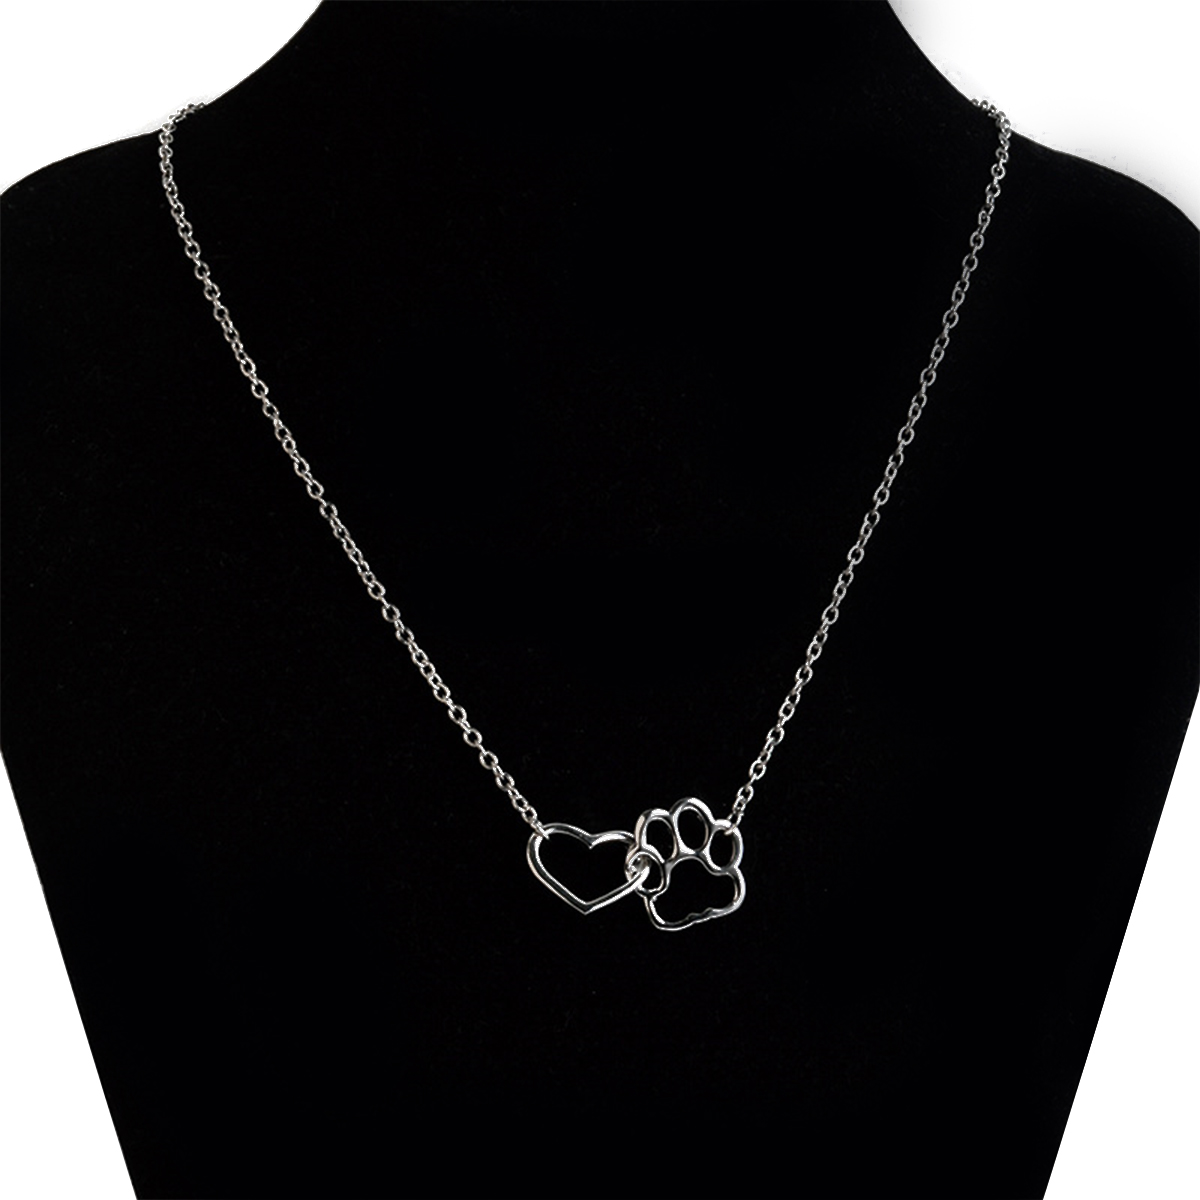 SALE HOLLOW PET PAW FOOTPRINT NECKLACES FOR CAT LOVERS-Cat Jewelry-Free Shipping SALE HOLLOW PET PAW FOOTPRINT NECKLACES FOR CAT LOVERS-Cat Jewelry-Free Shipping HTB1HNEiRpXXXXXtXFXXq6xXFXXX9